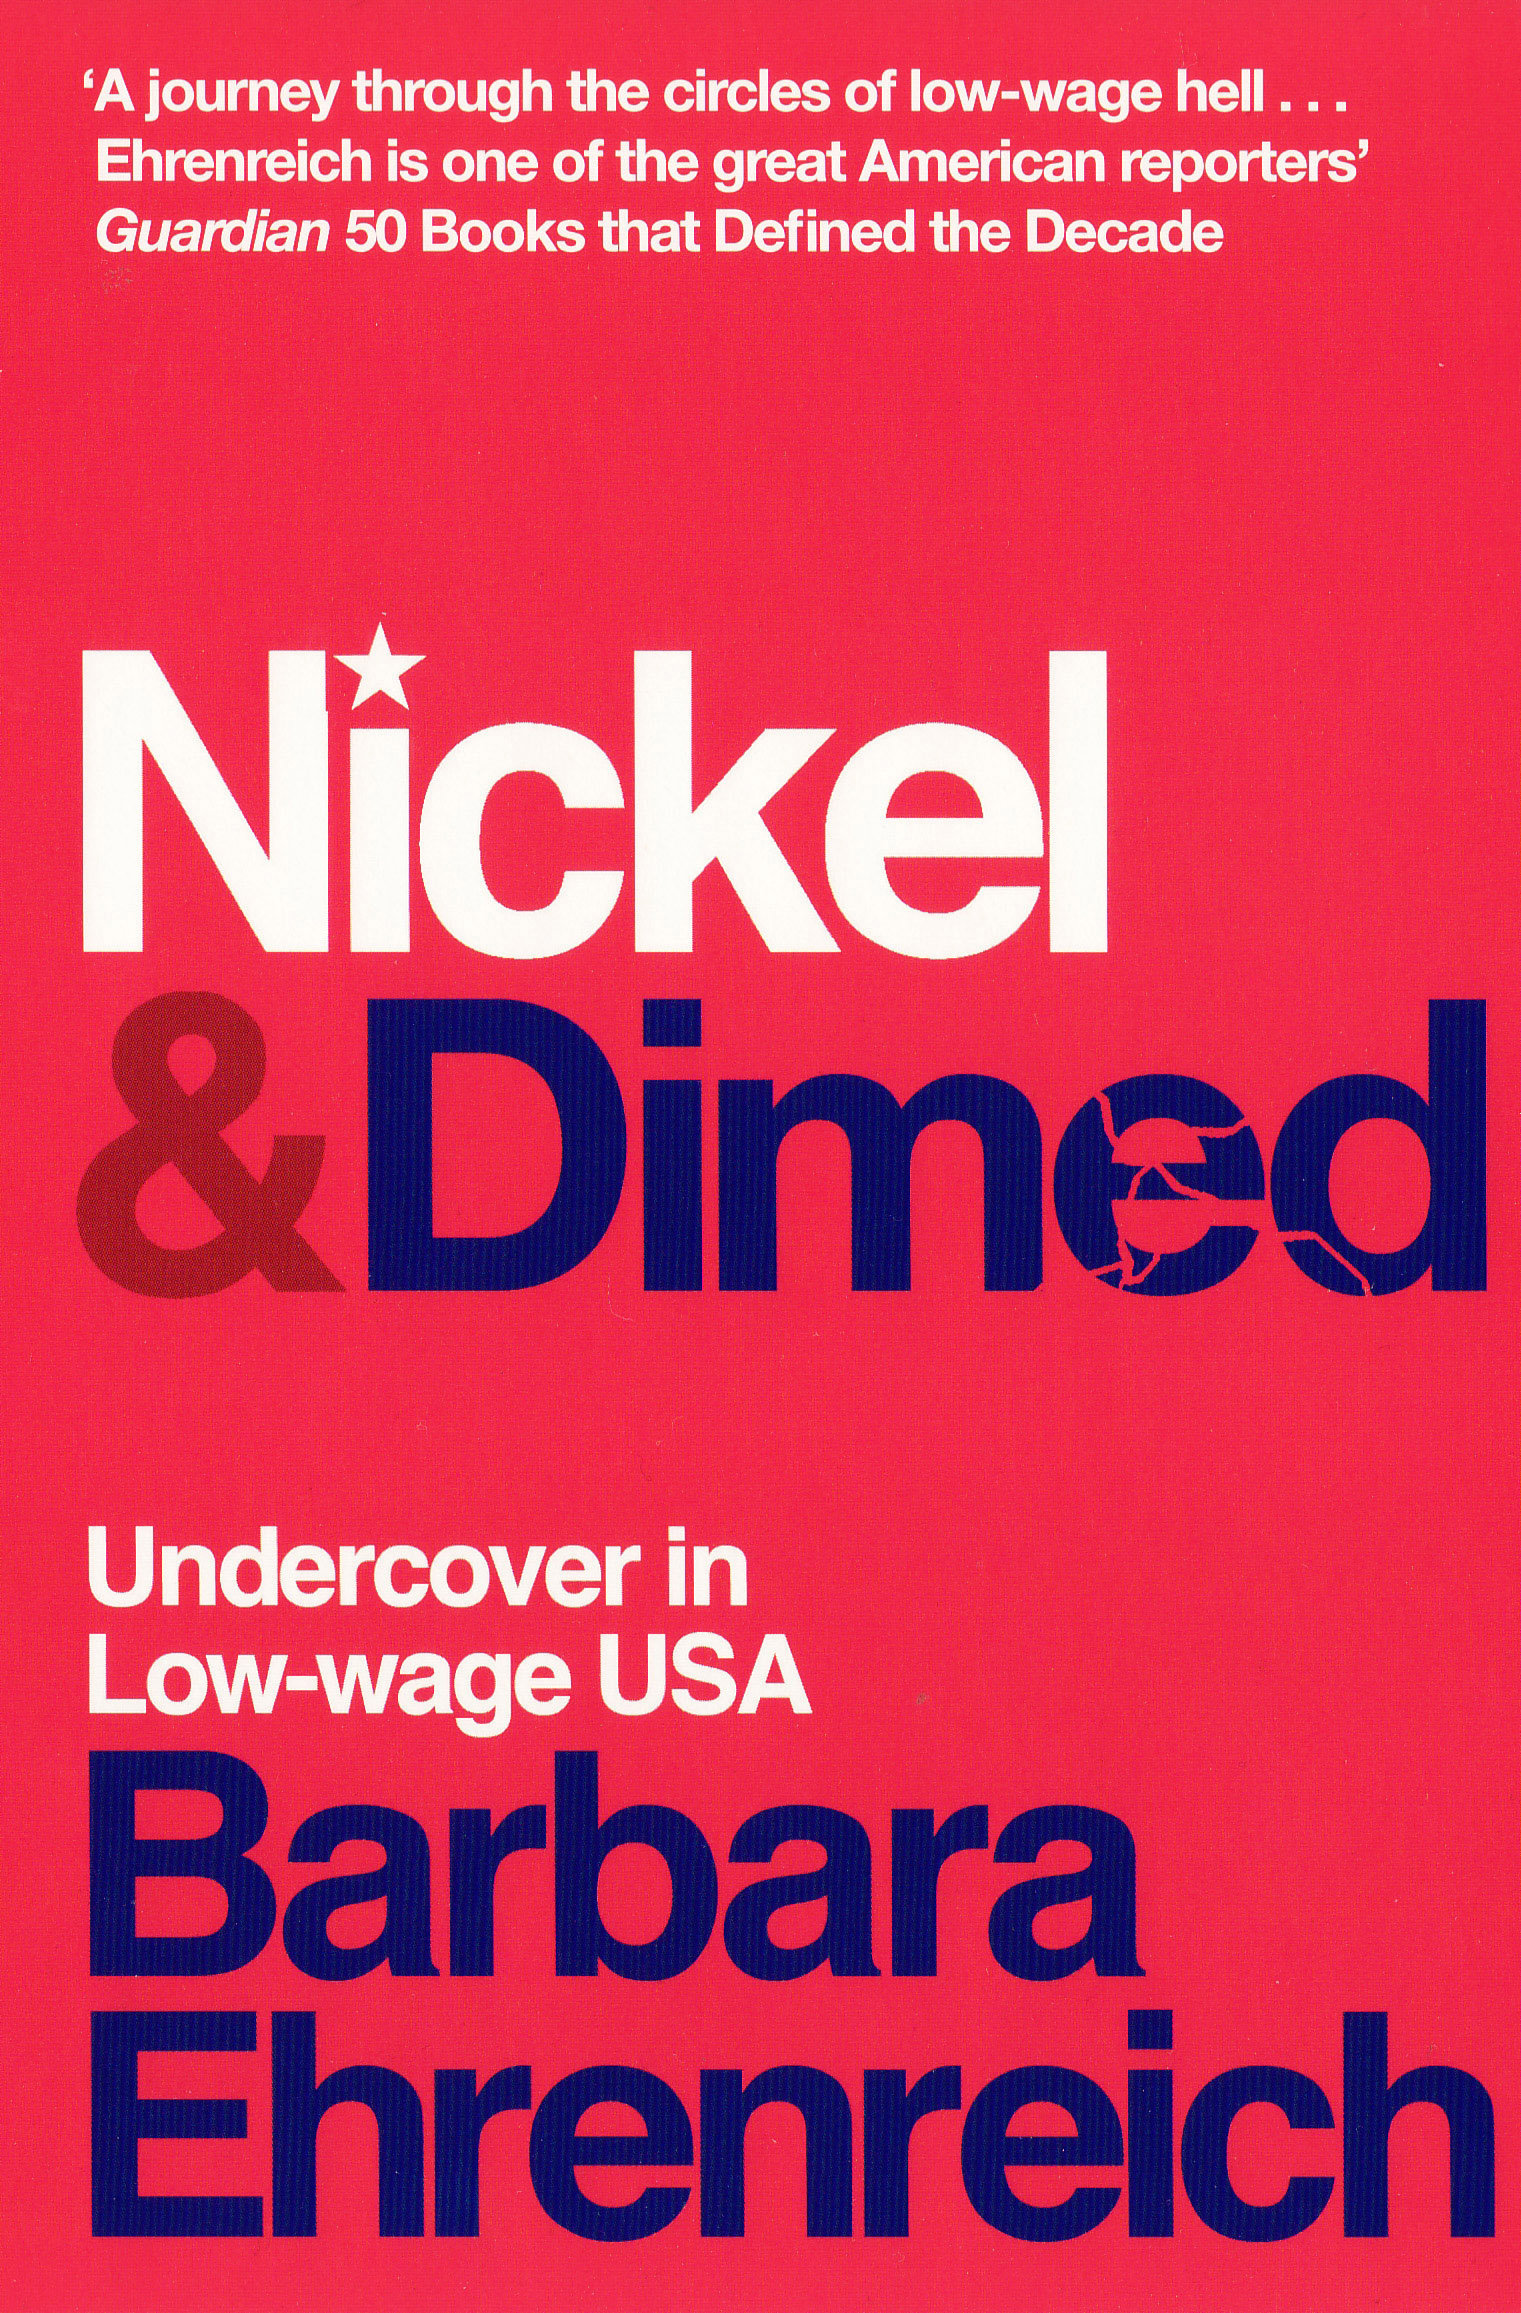 an analysis of the book nickle and dimed by barbara ehrenreich